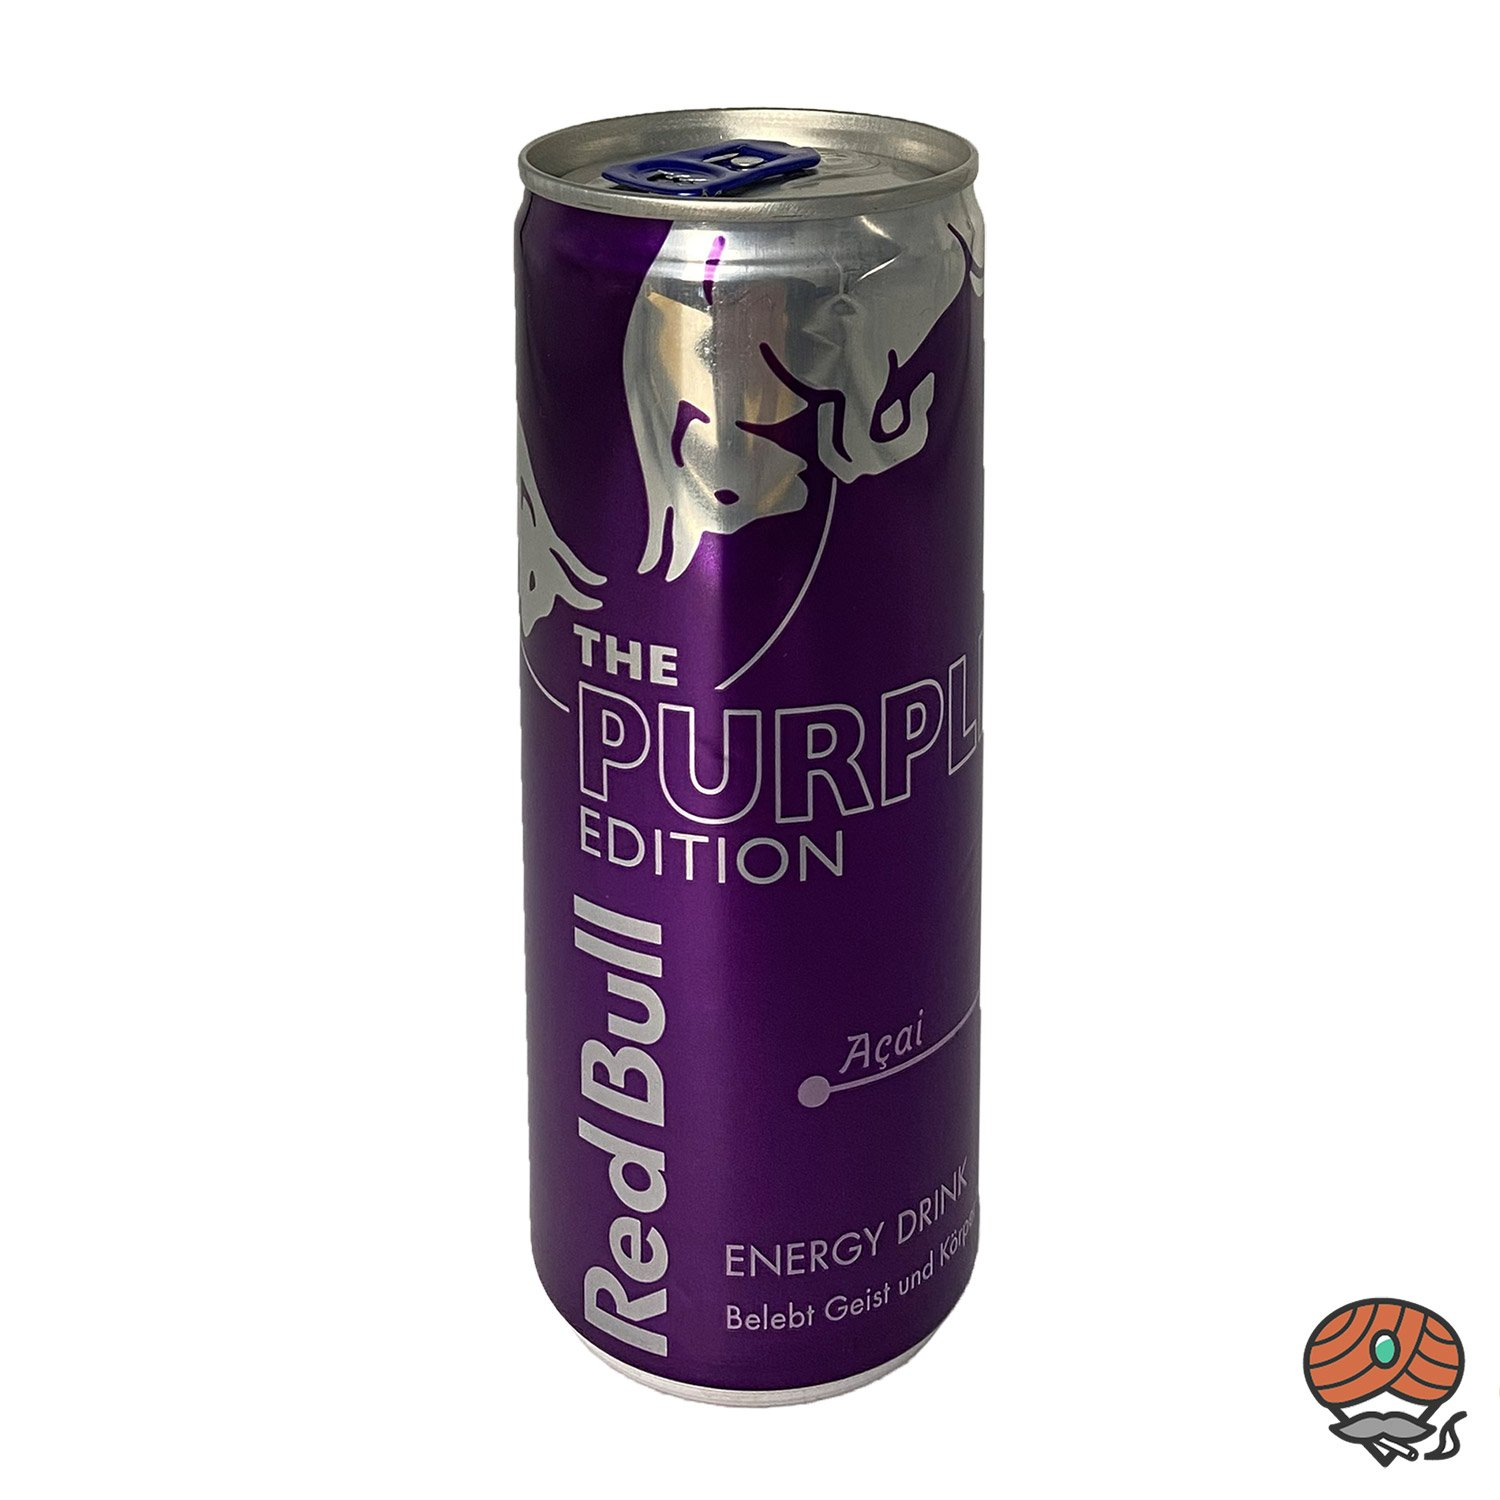 Red Bull Energy Drink THE PURPLE EDITION, Açai-Beere, 250 ml Dose